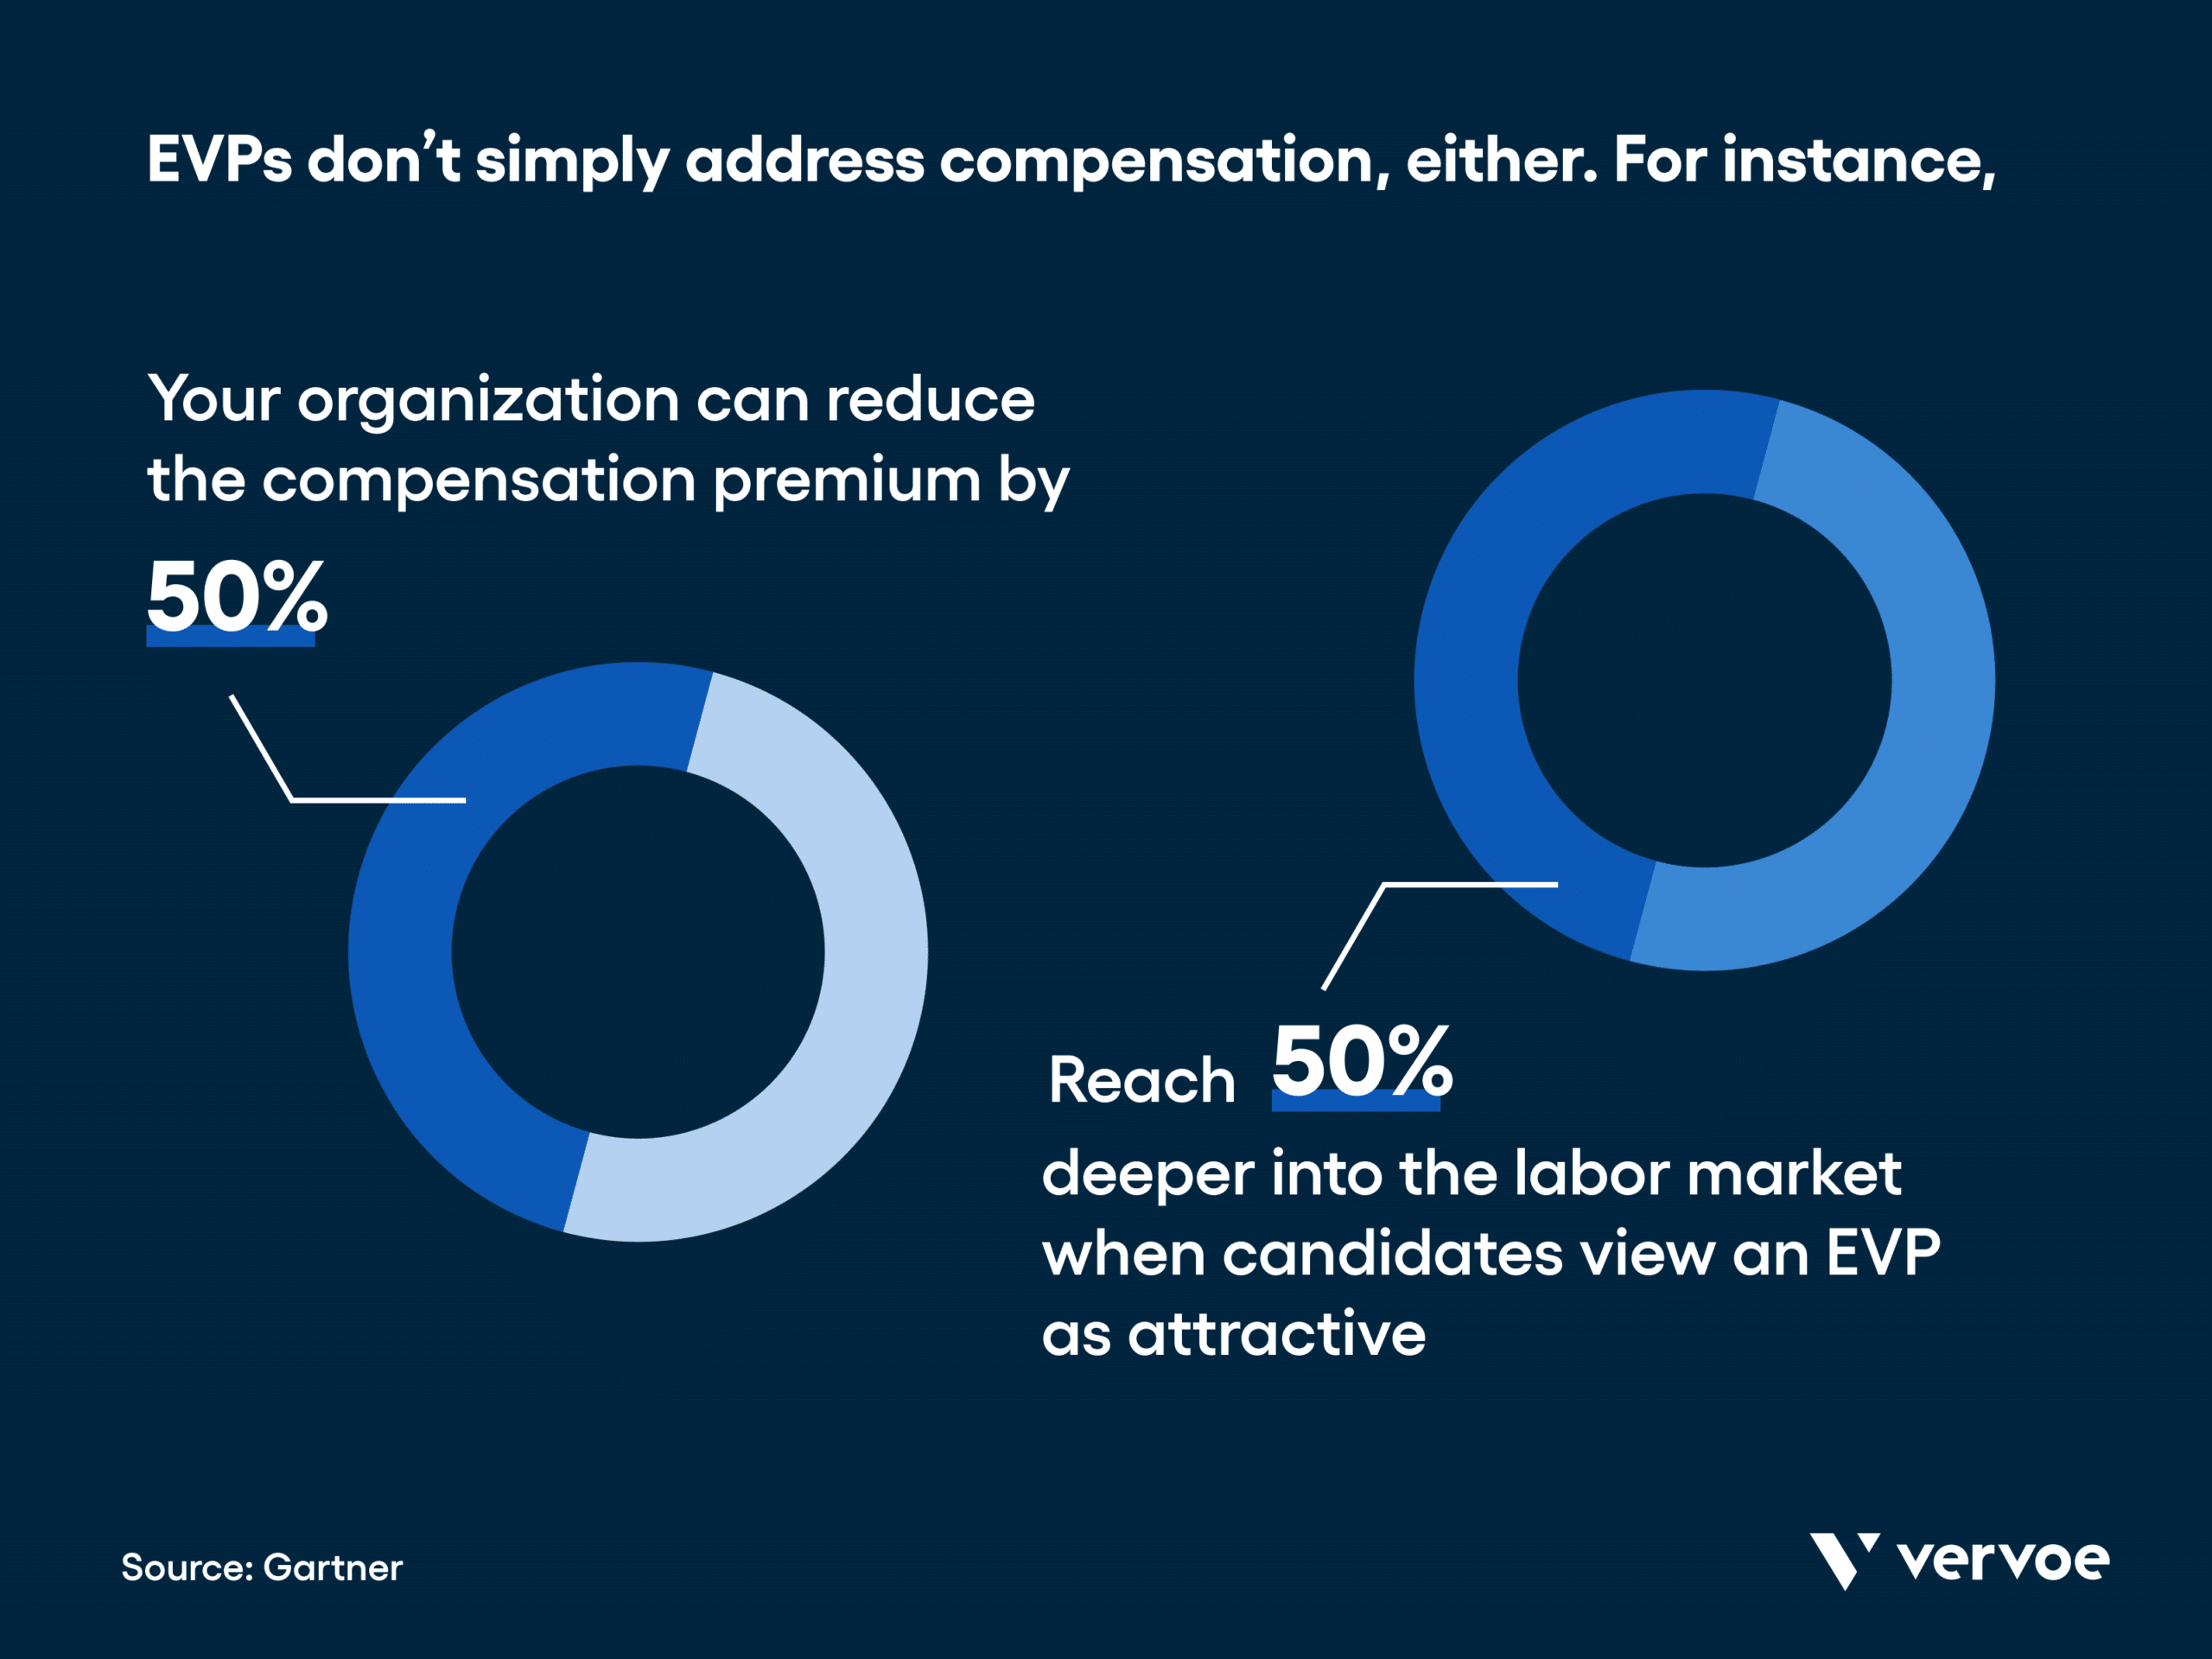 Infographic showing how organizations can reduce compensation premium and reach by 50% with effective evps